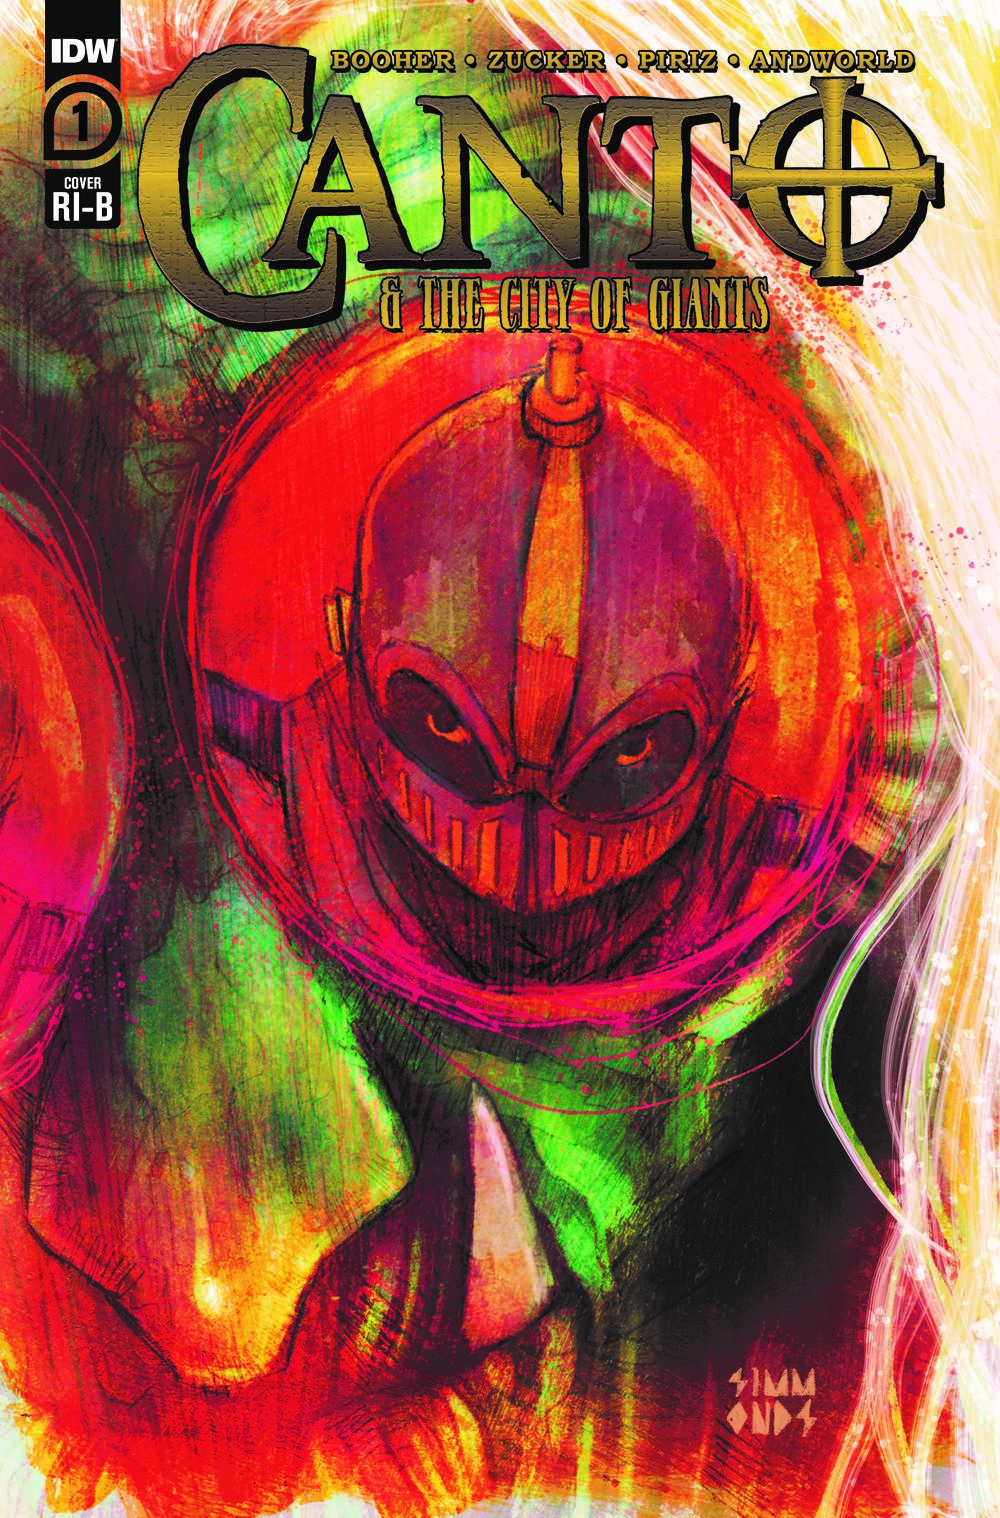 Canto-CoG01_cvrRI-B ComicList Previews: CANTO AND THE CITY OF GIANTS #1 (OF 3)